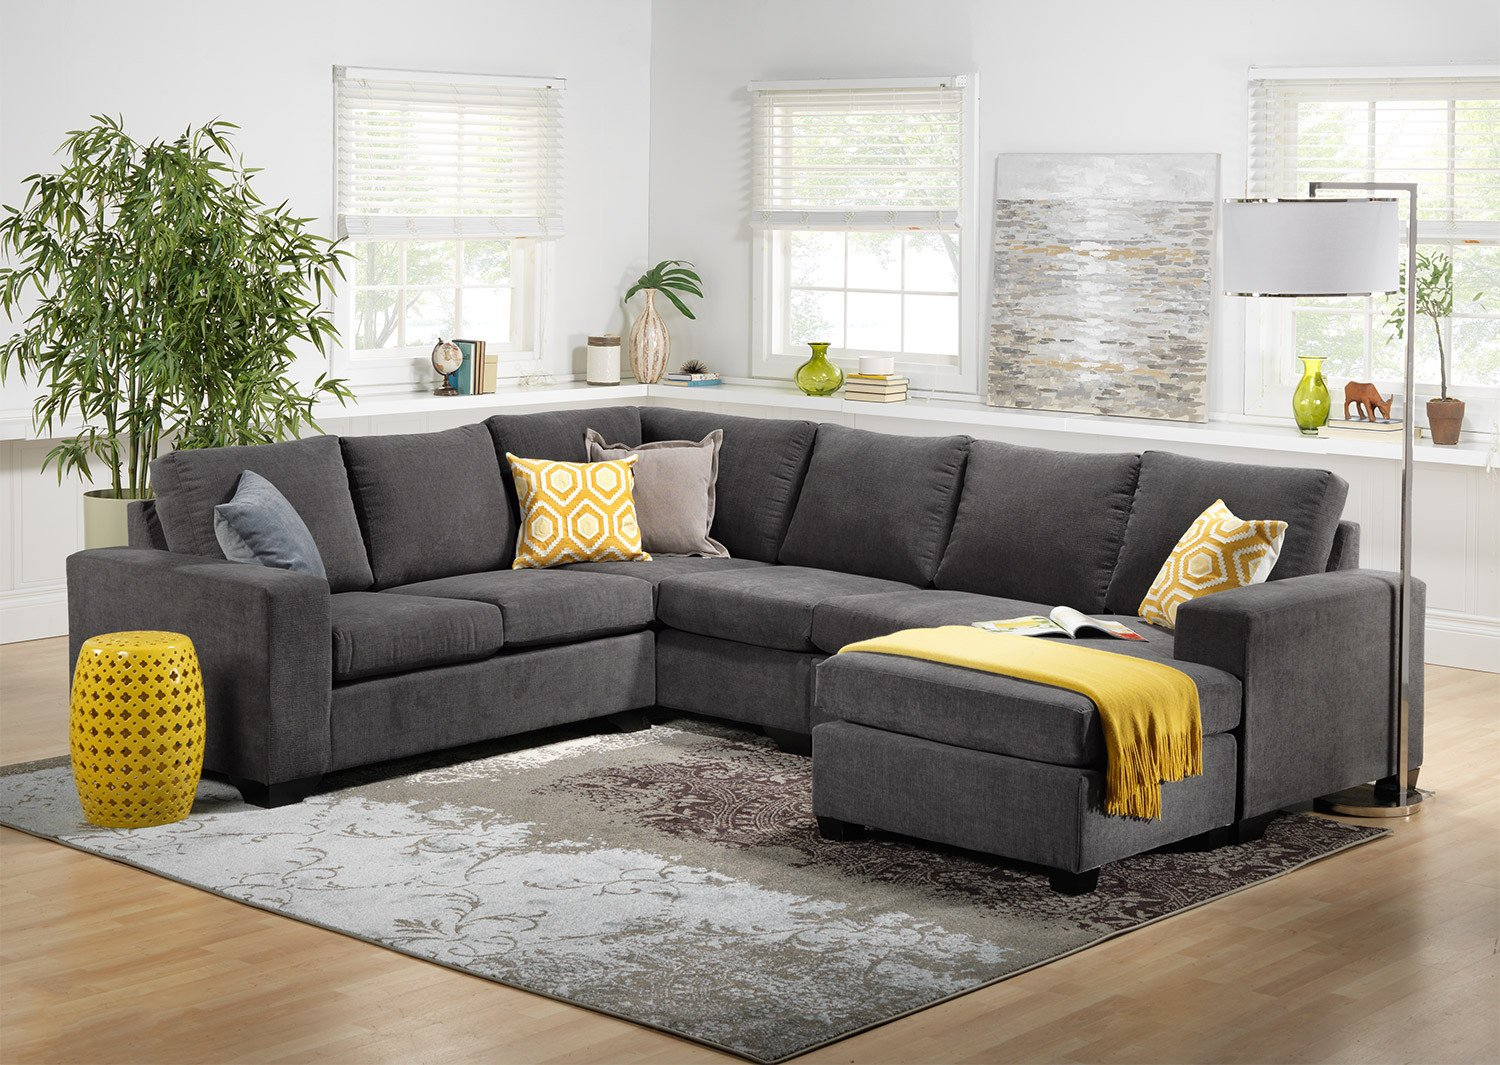 Comfortable Living Roomfurniture Elegant Furniture fortable Sectionals sofa for Elegant Living Room Furniture Design